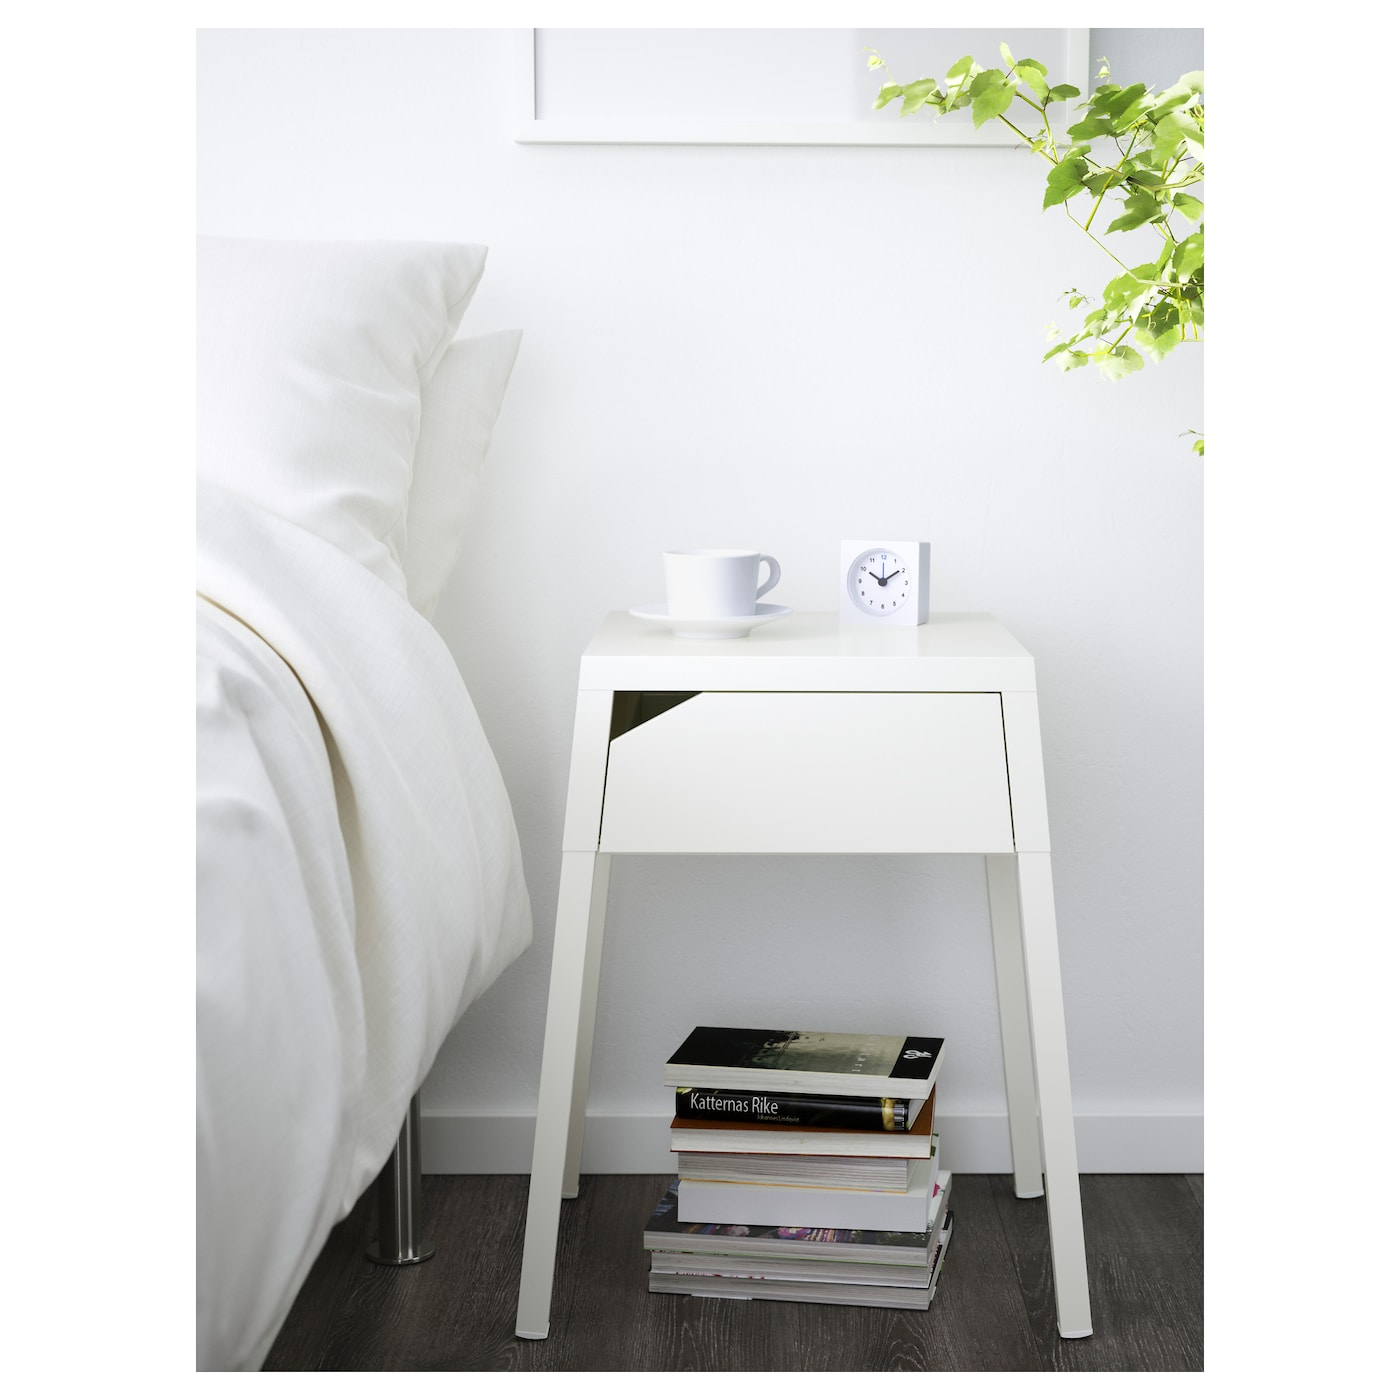 Superieur IKEA SELJE Bedside Table In The Drawer There Is Room For An Extension  Socket For Your